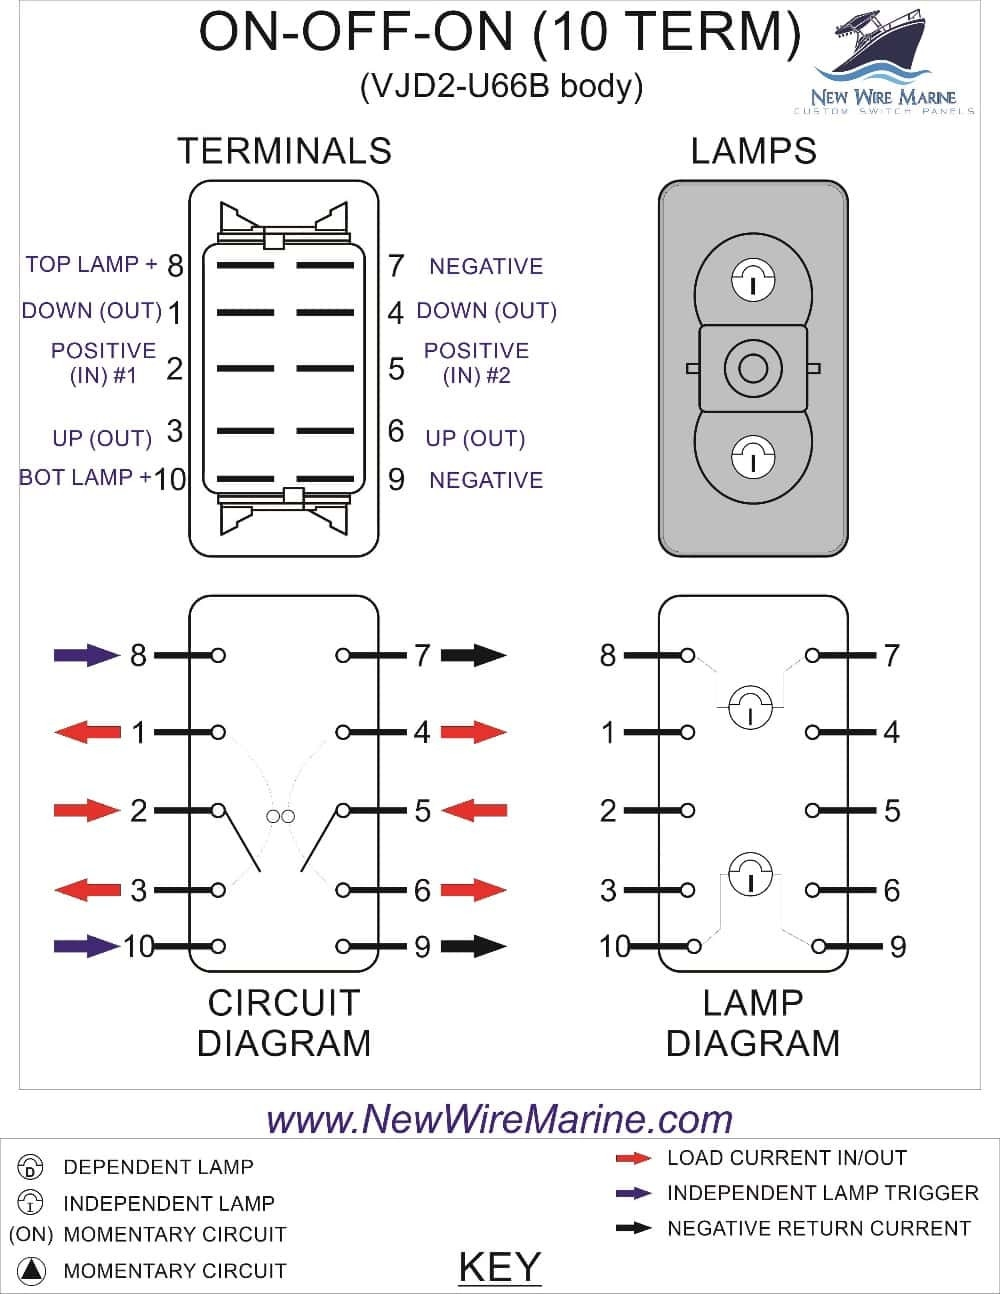 6 pin dpdt switch wiring diagram Download-on off illuminated rocker switch wiring diagram to double pole throw rh natebird me carling dpdt rocker switch wiring diagram Dpst Switch Wiring Diagram 20-a